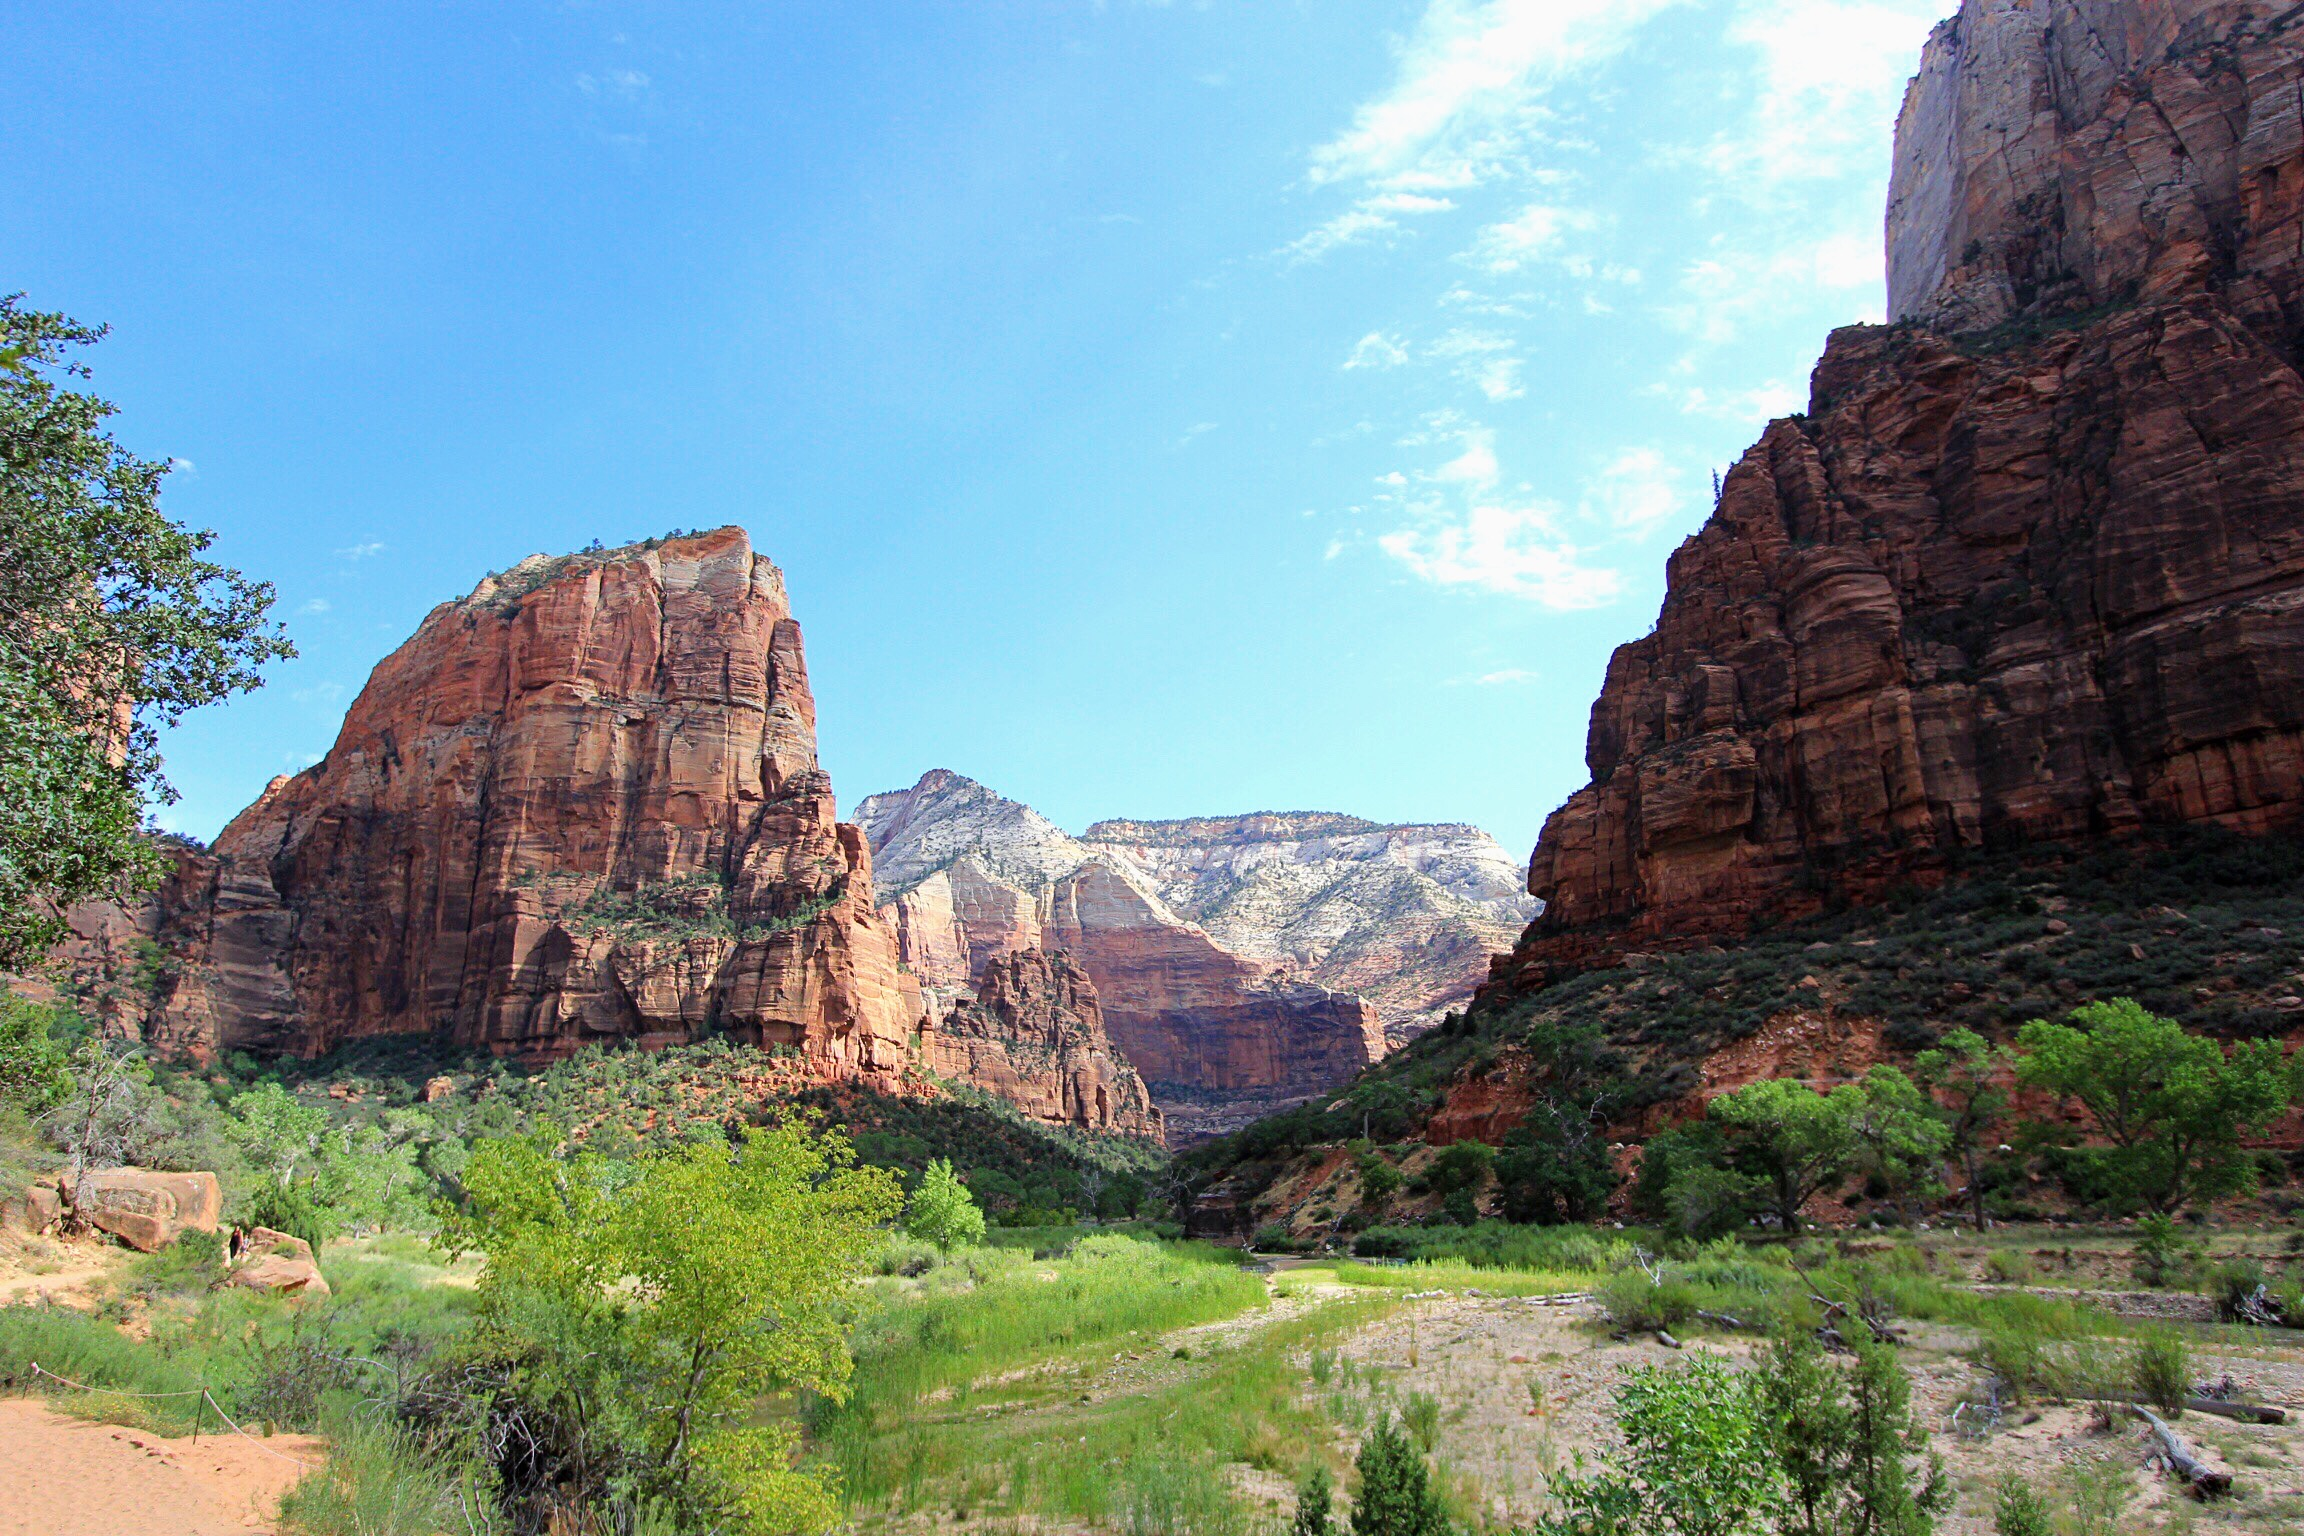 View of Angels Landing from the bottom of Zion Canyon